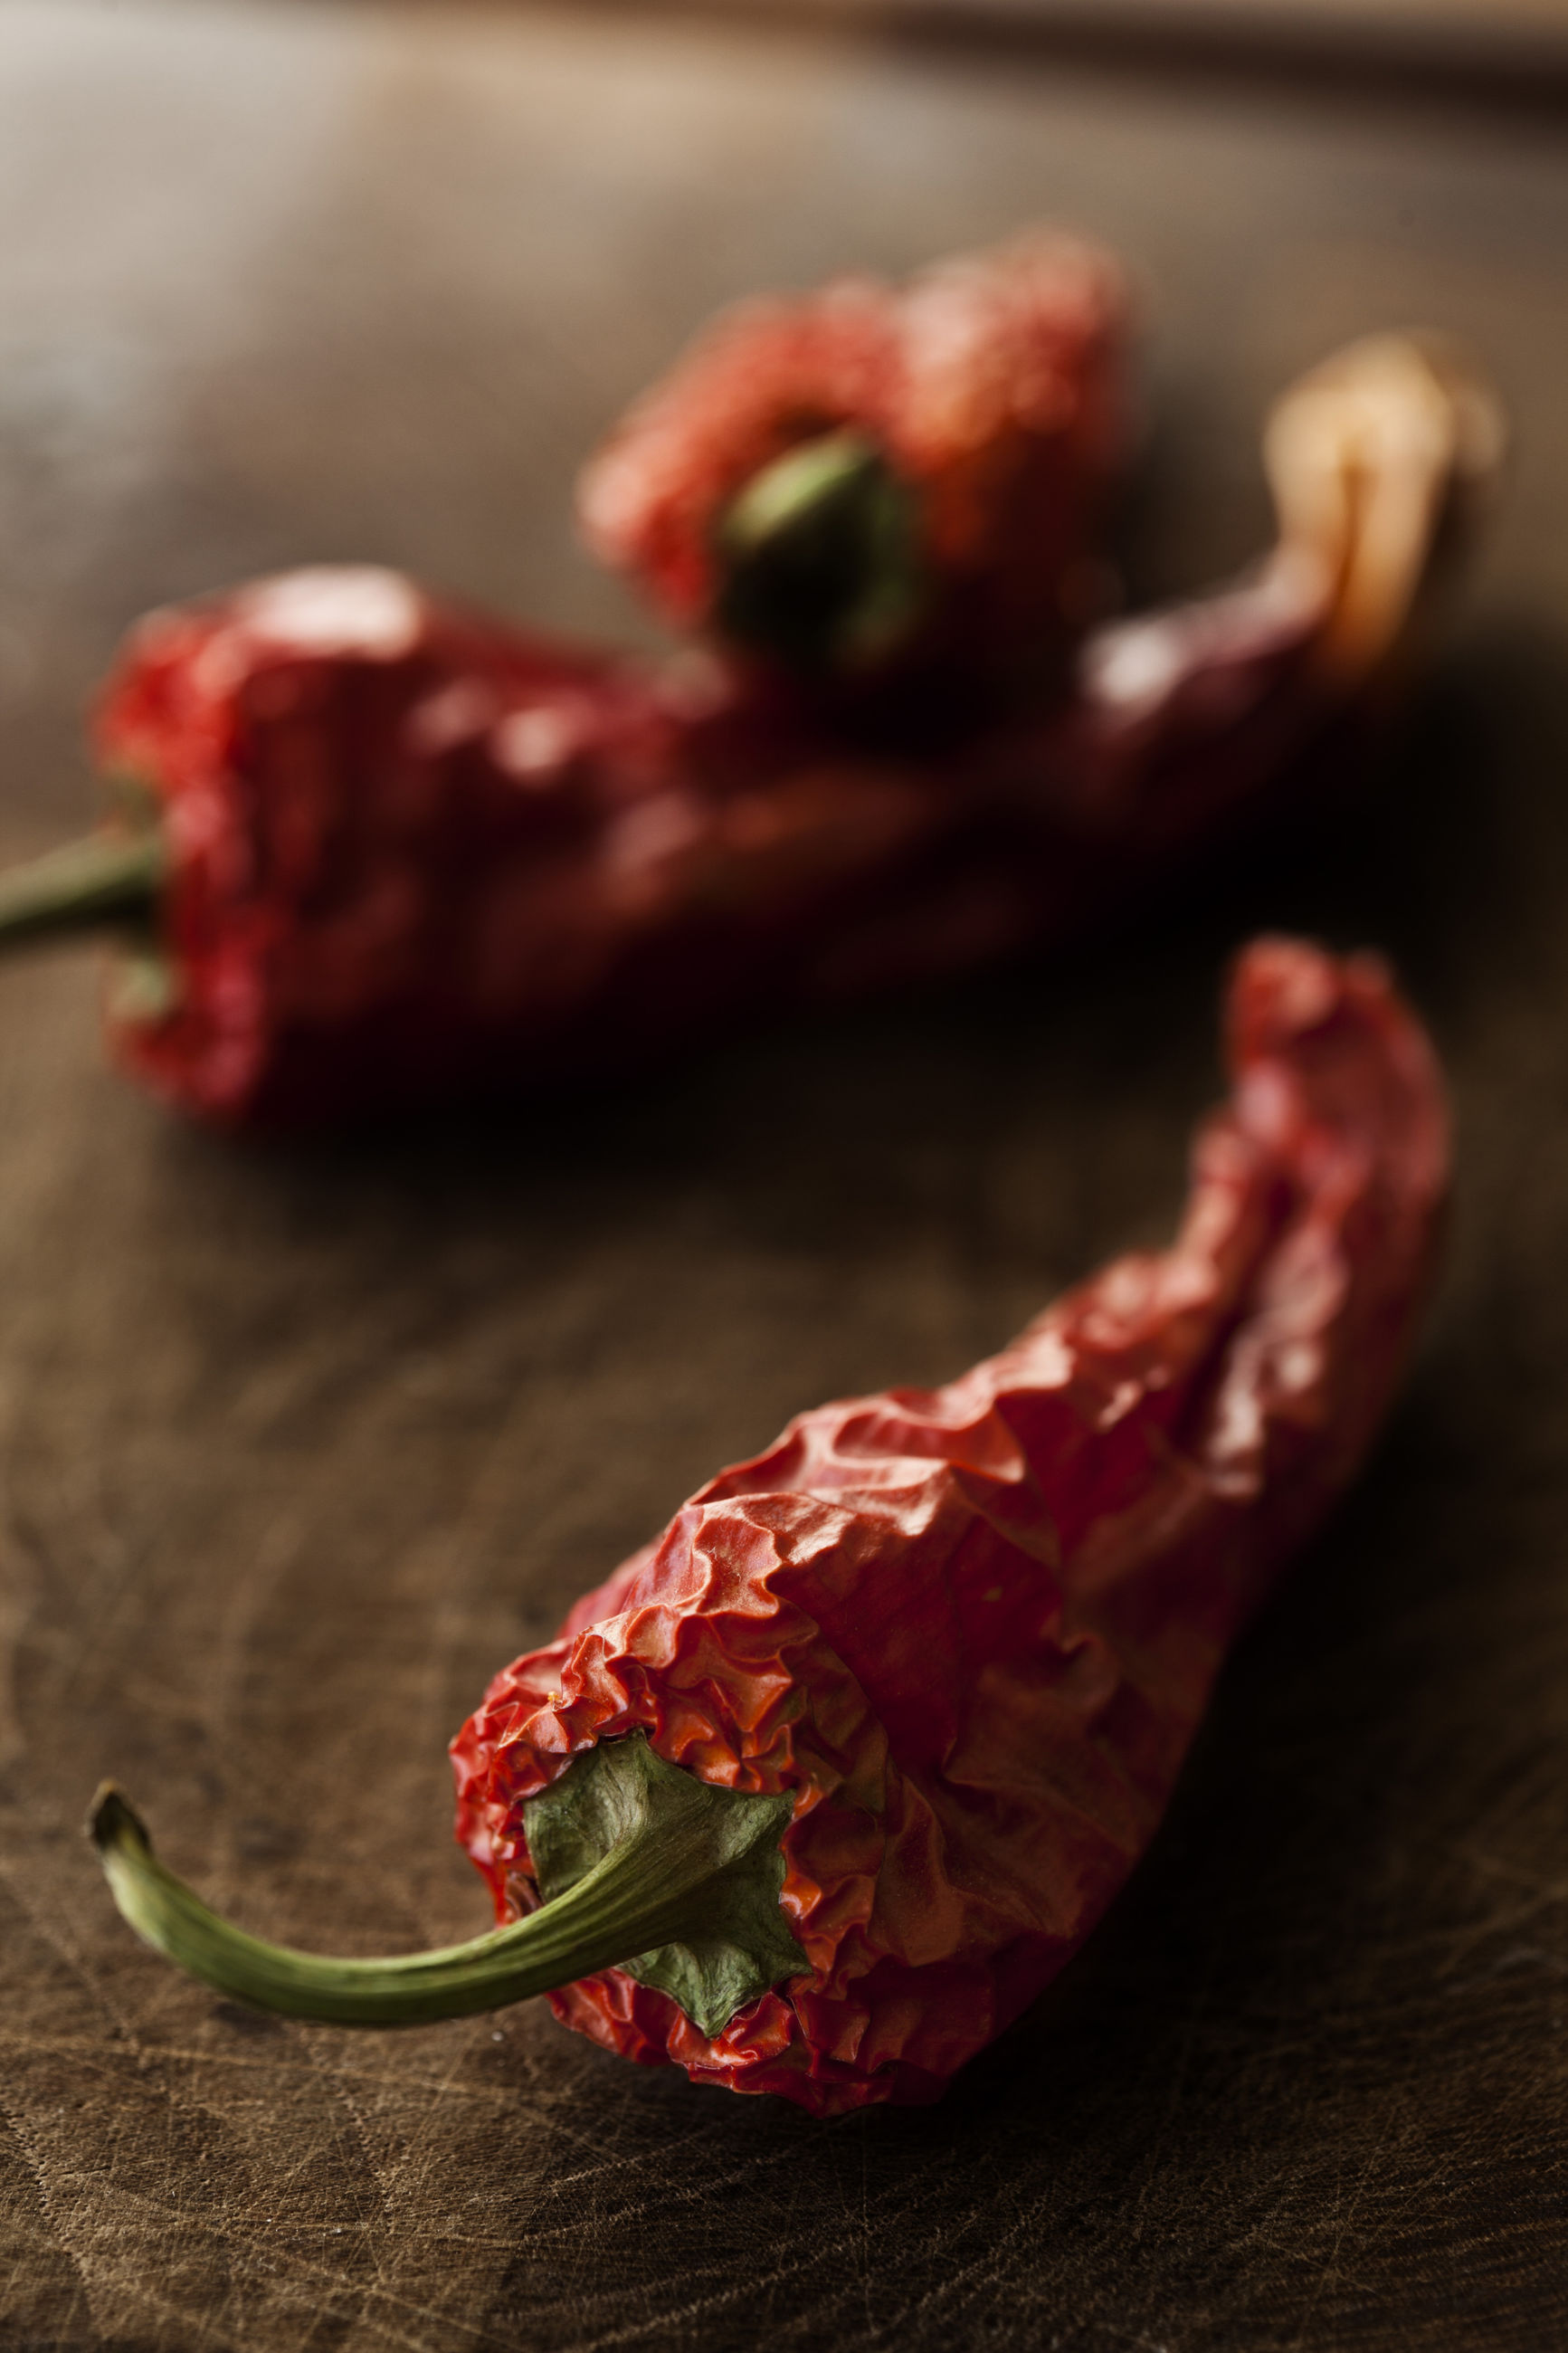 CLOSE-UP OF RED CHILI PEPPERS IN CONTAINER ON TABLE